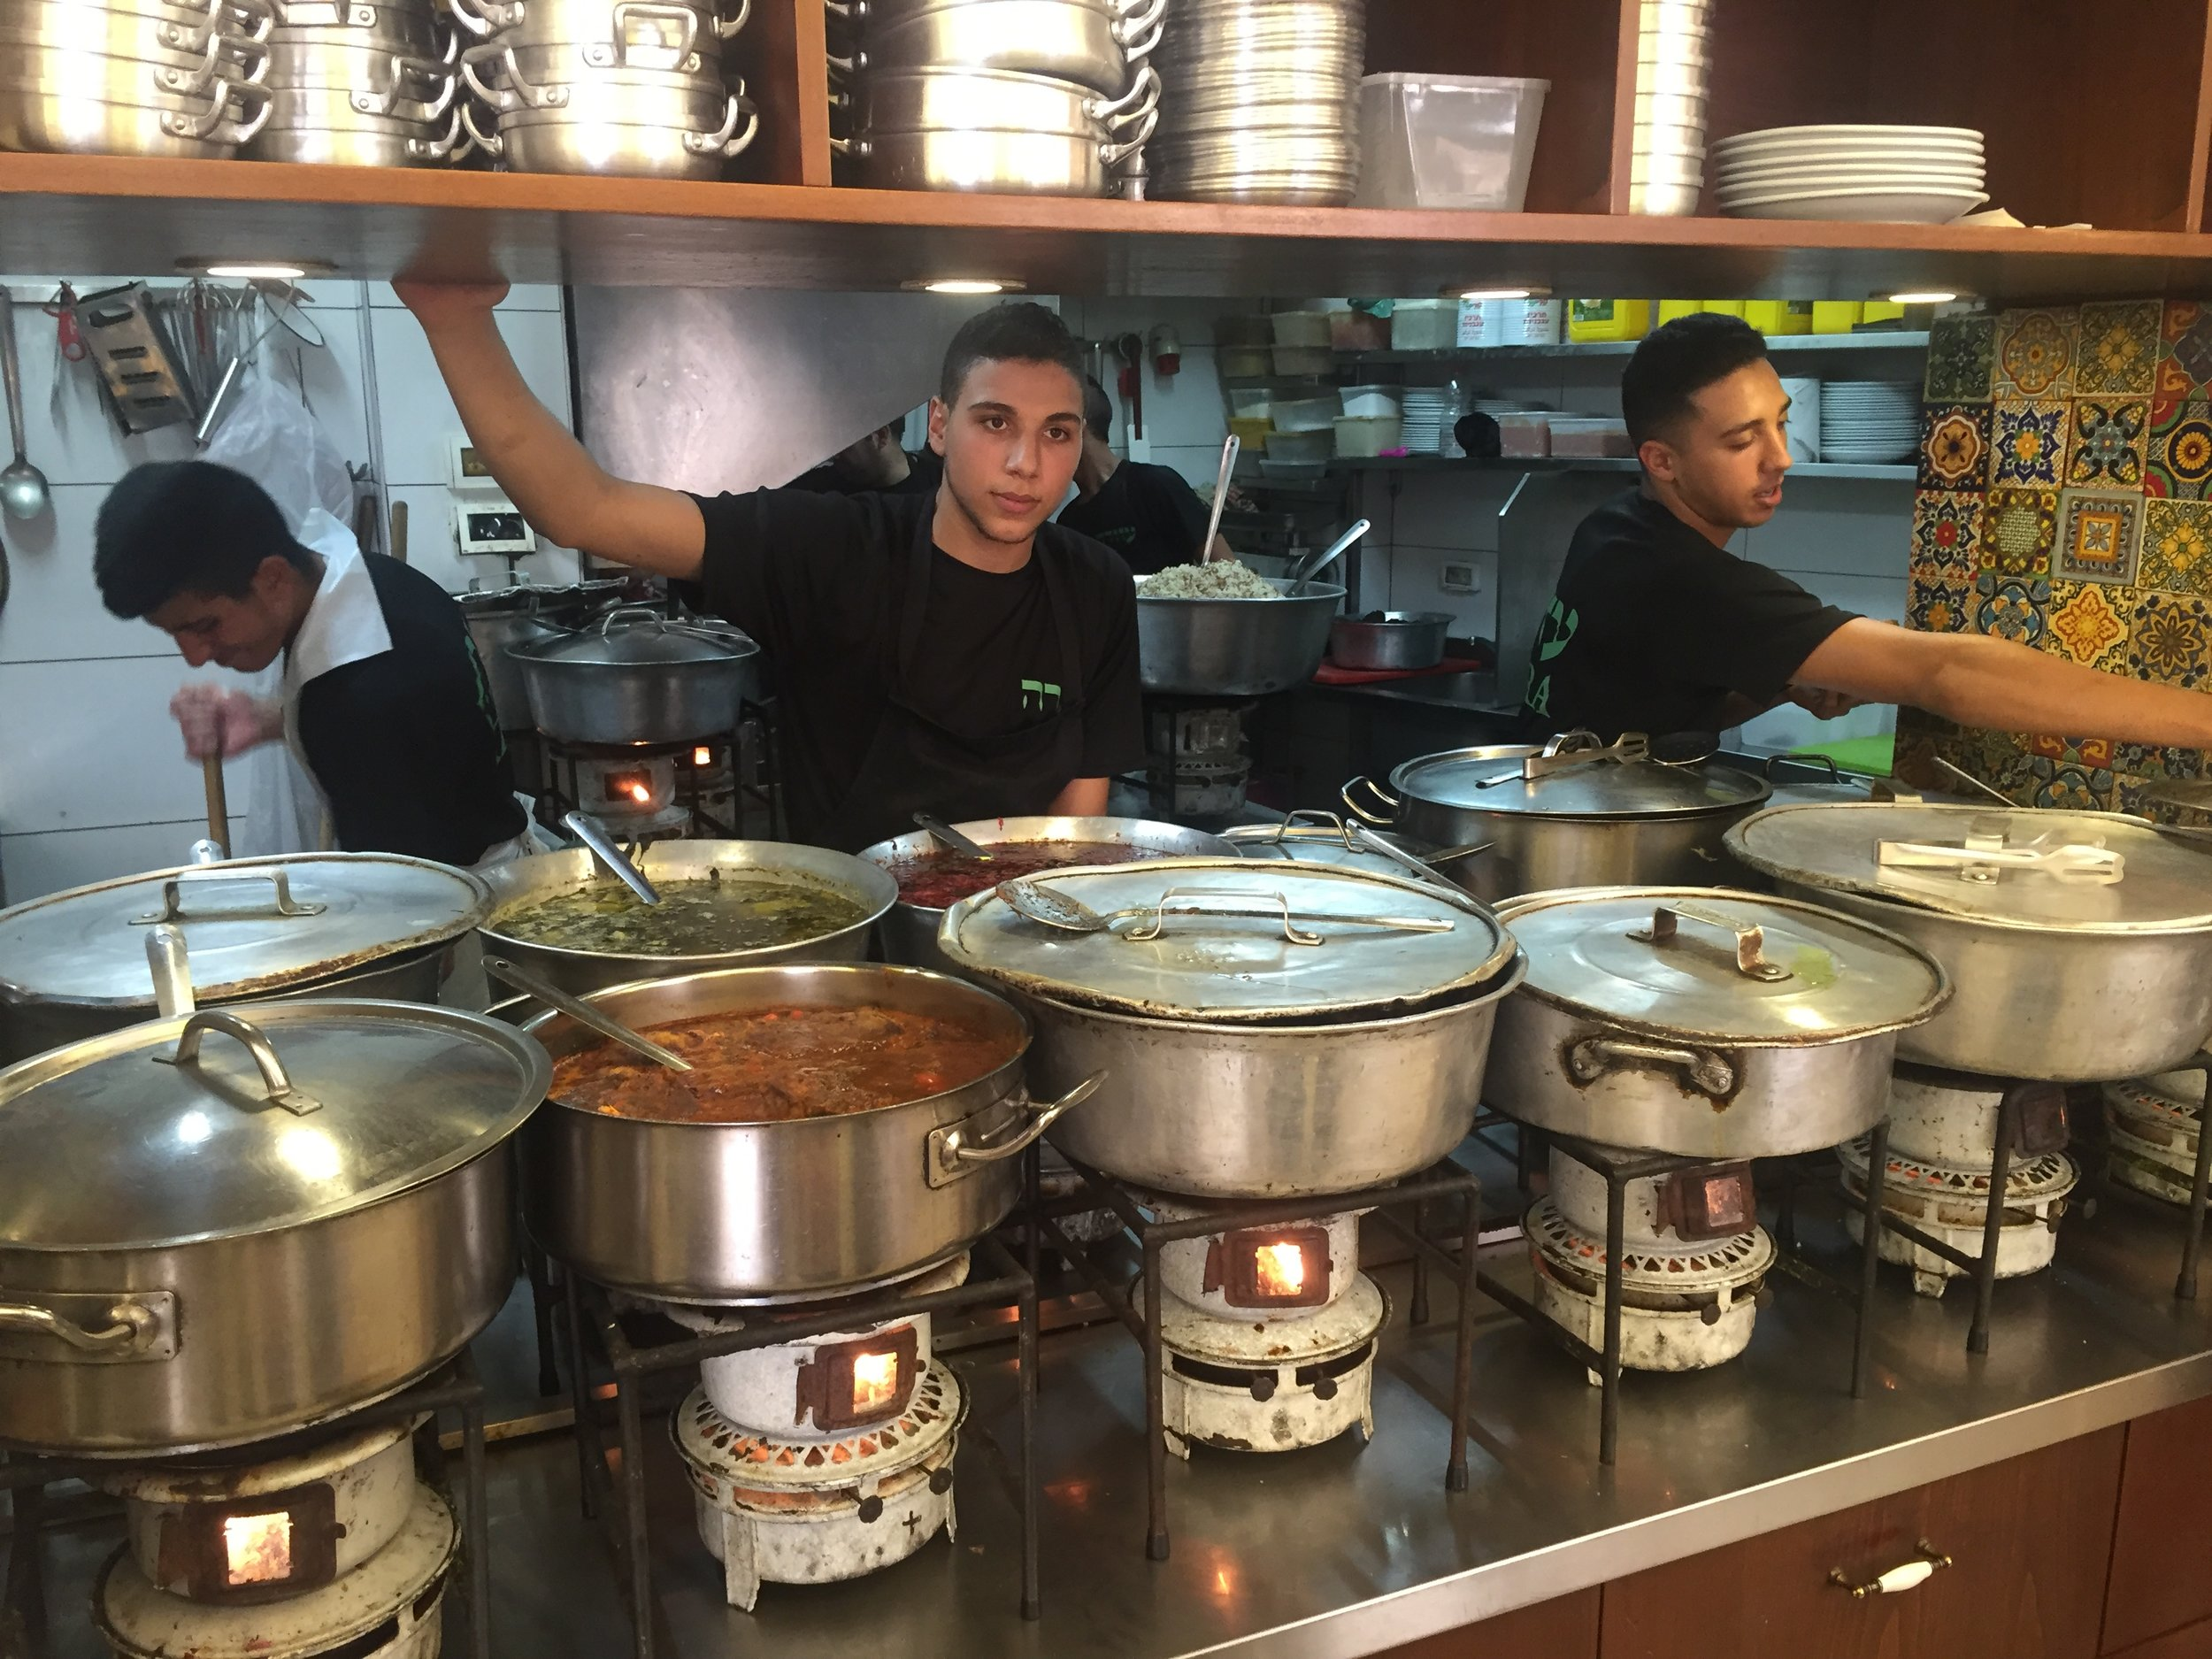 Cooks at Azura in the Shuk